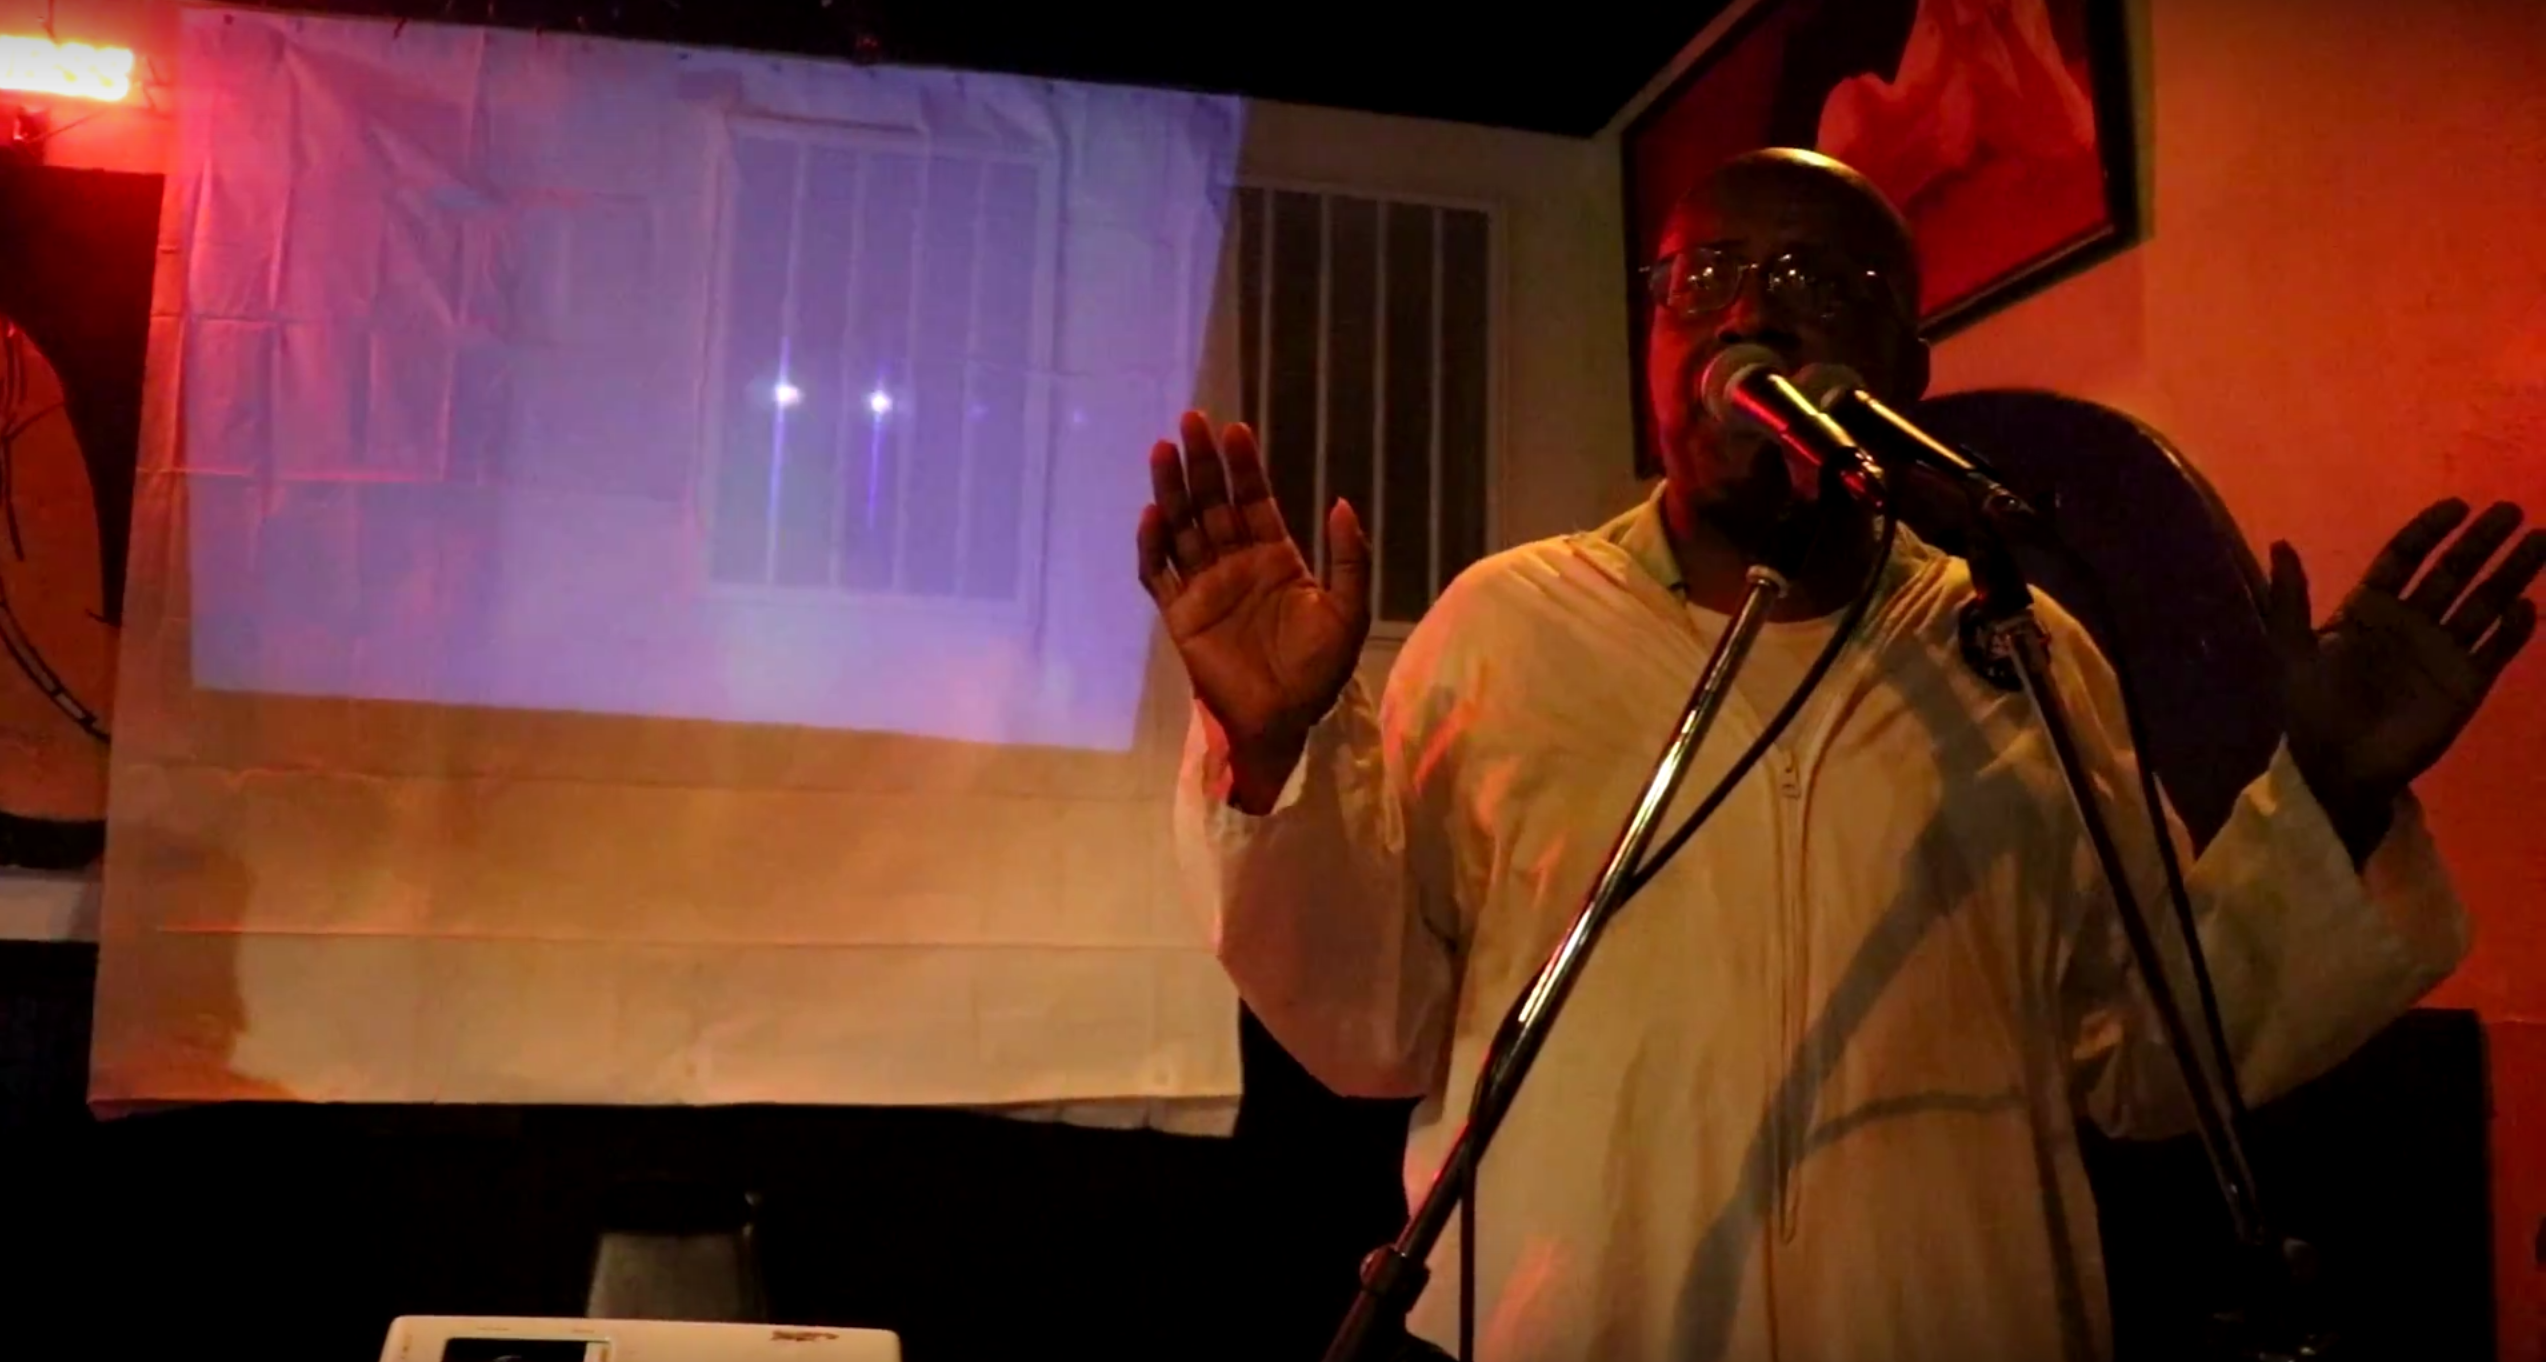 Adult Swim star, David Liebe Hart, performs at Duffy's Tavern. Photo credit: Carin Dorghalli